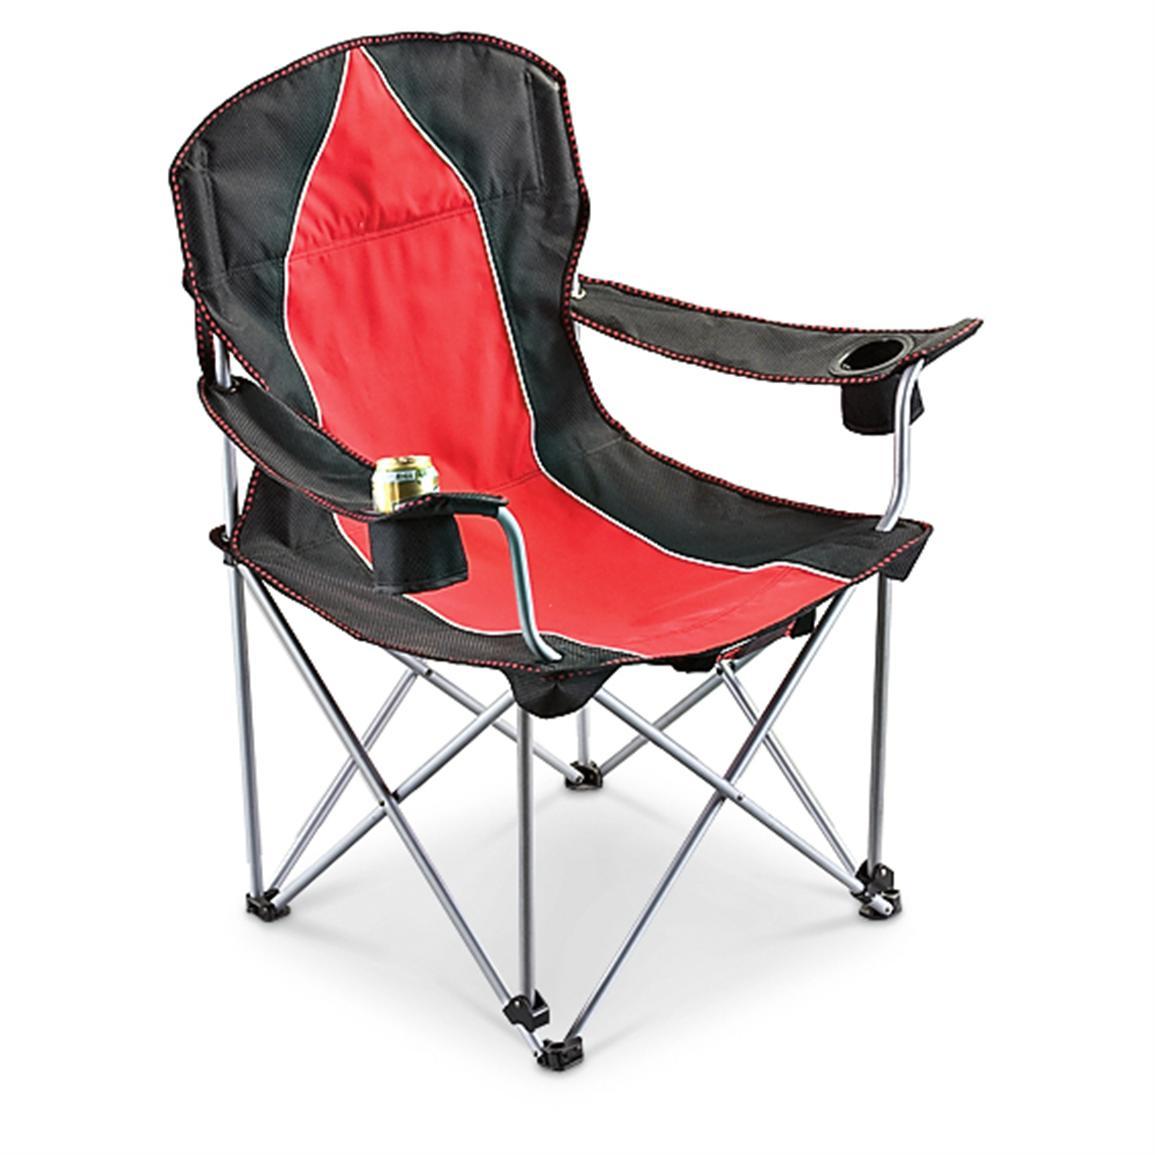 Campfire Chairs Guide Gear Big Daddy Camp Chair Red Black 172570